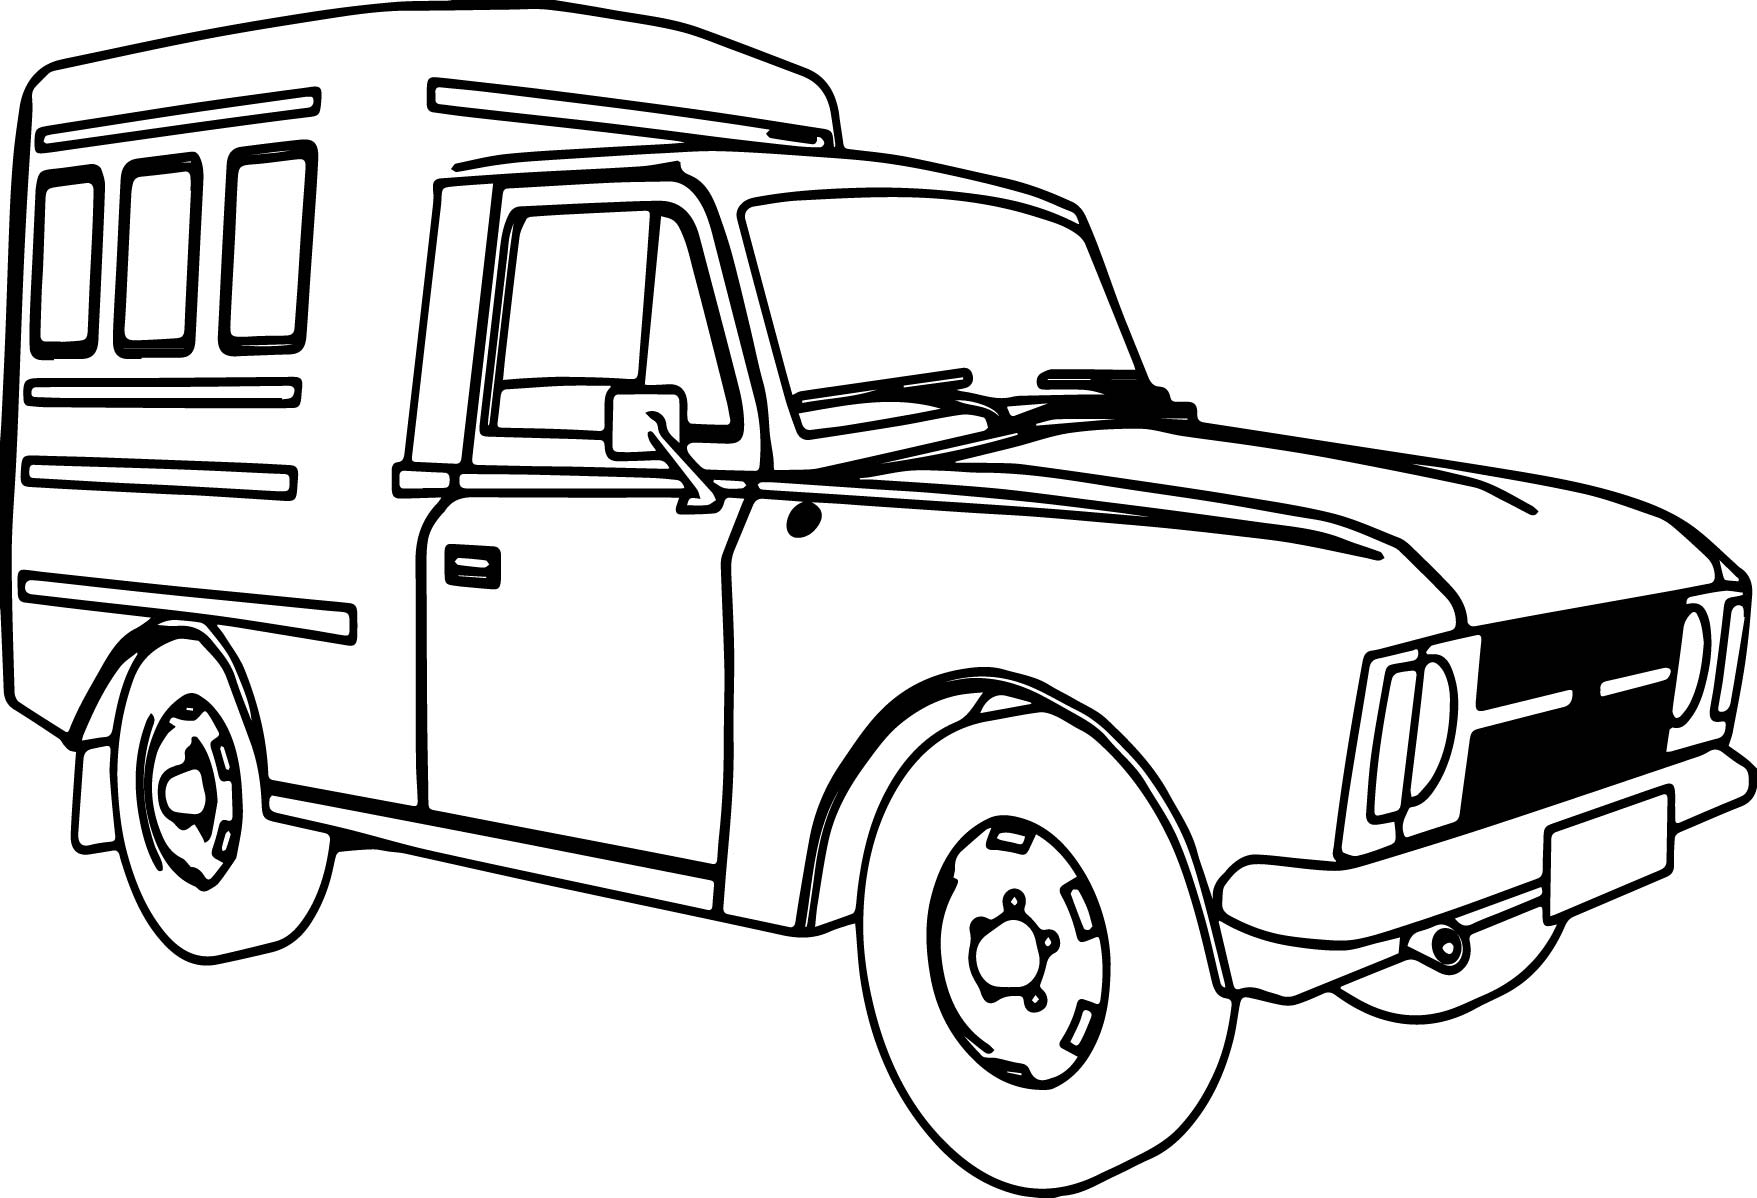 21 Truck Coloring Pages Compilation Free Coloring Pages